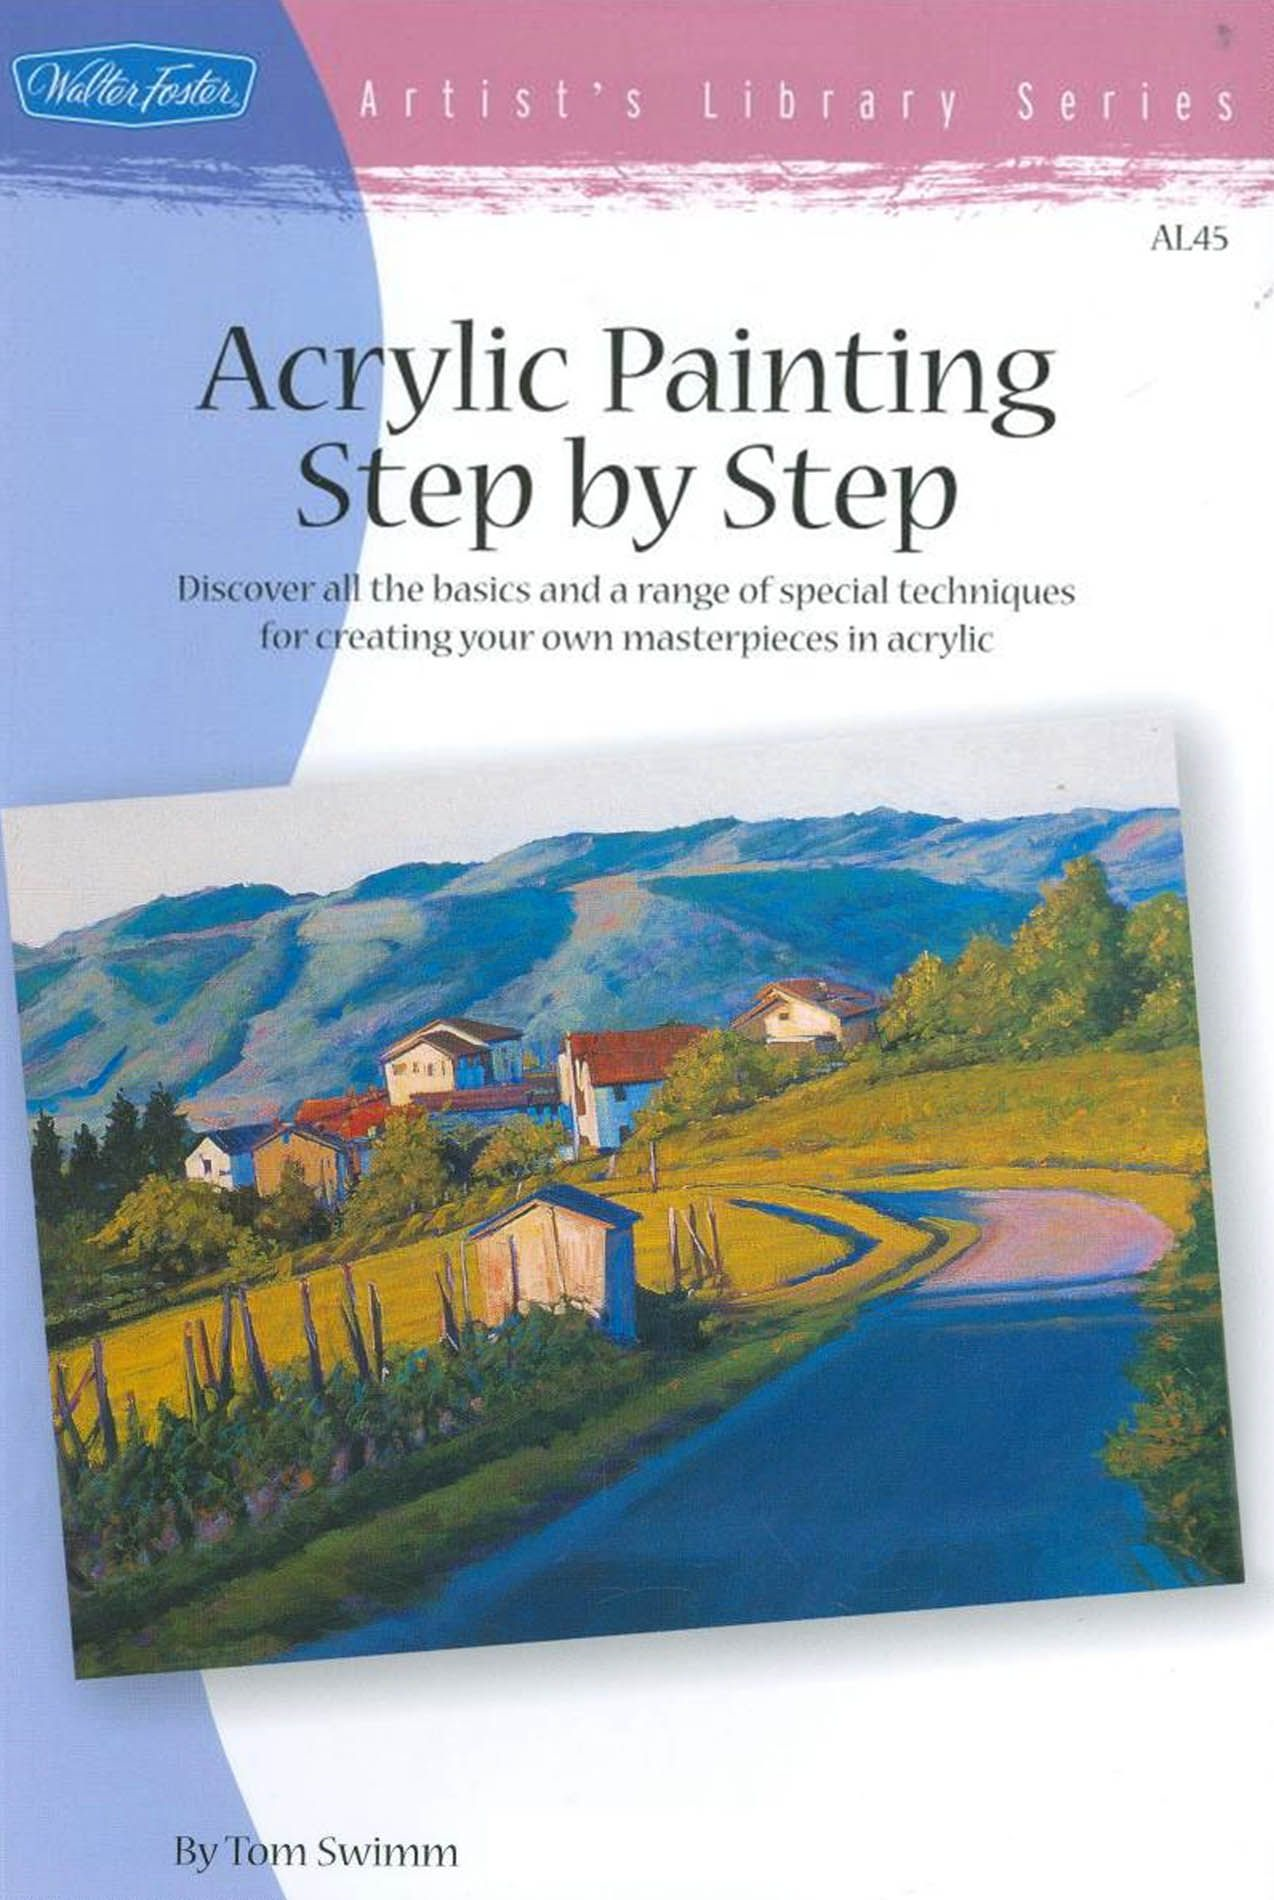 Acrylic Painting Step by Step By: Tom Swimm